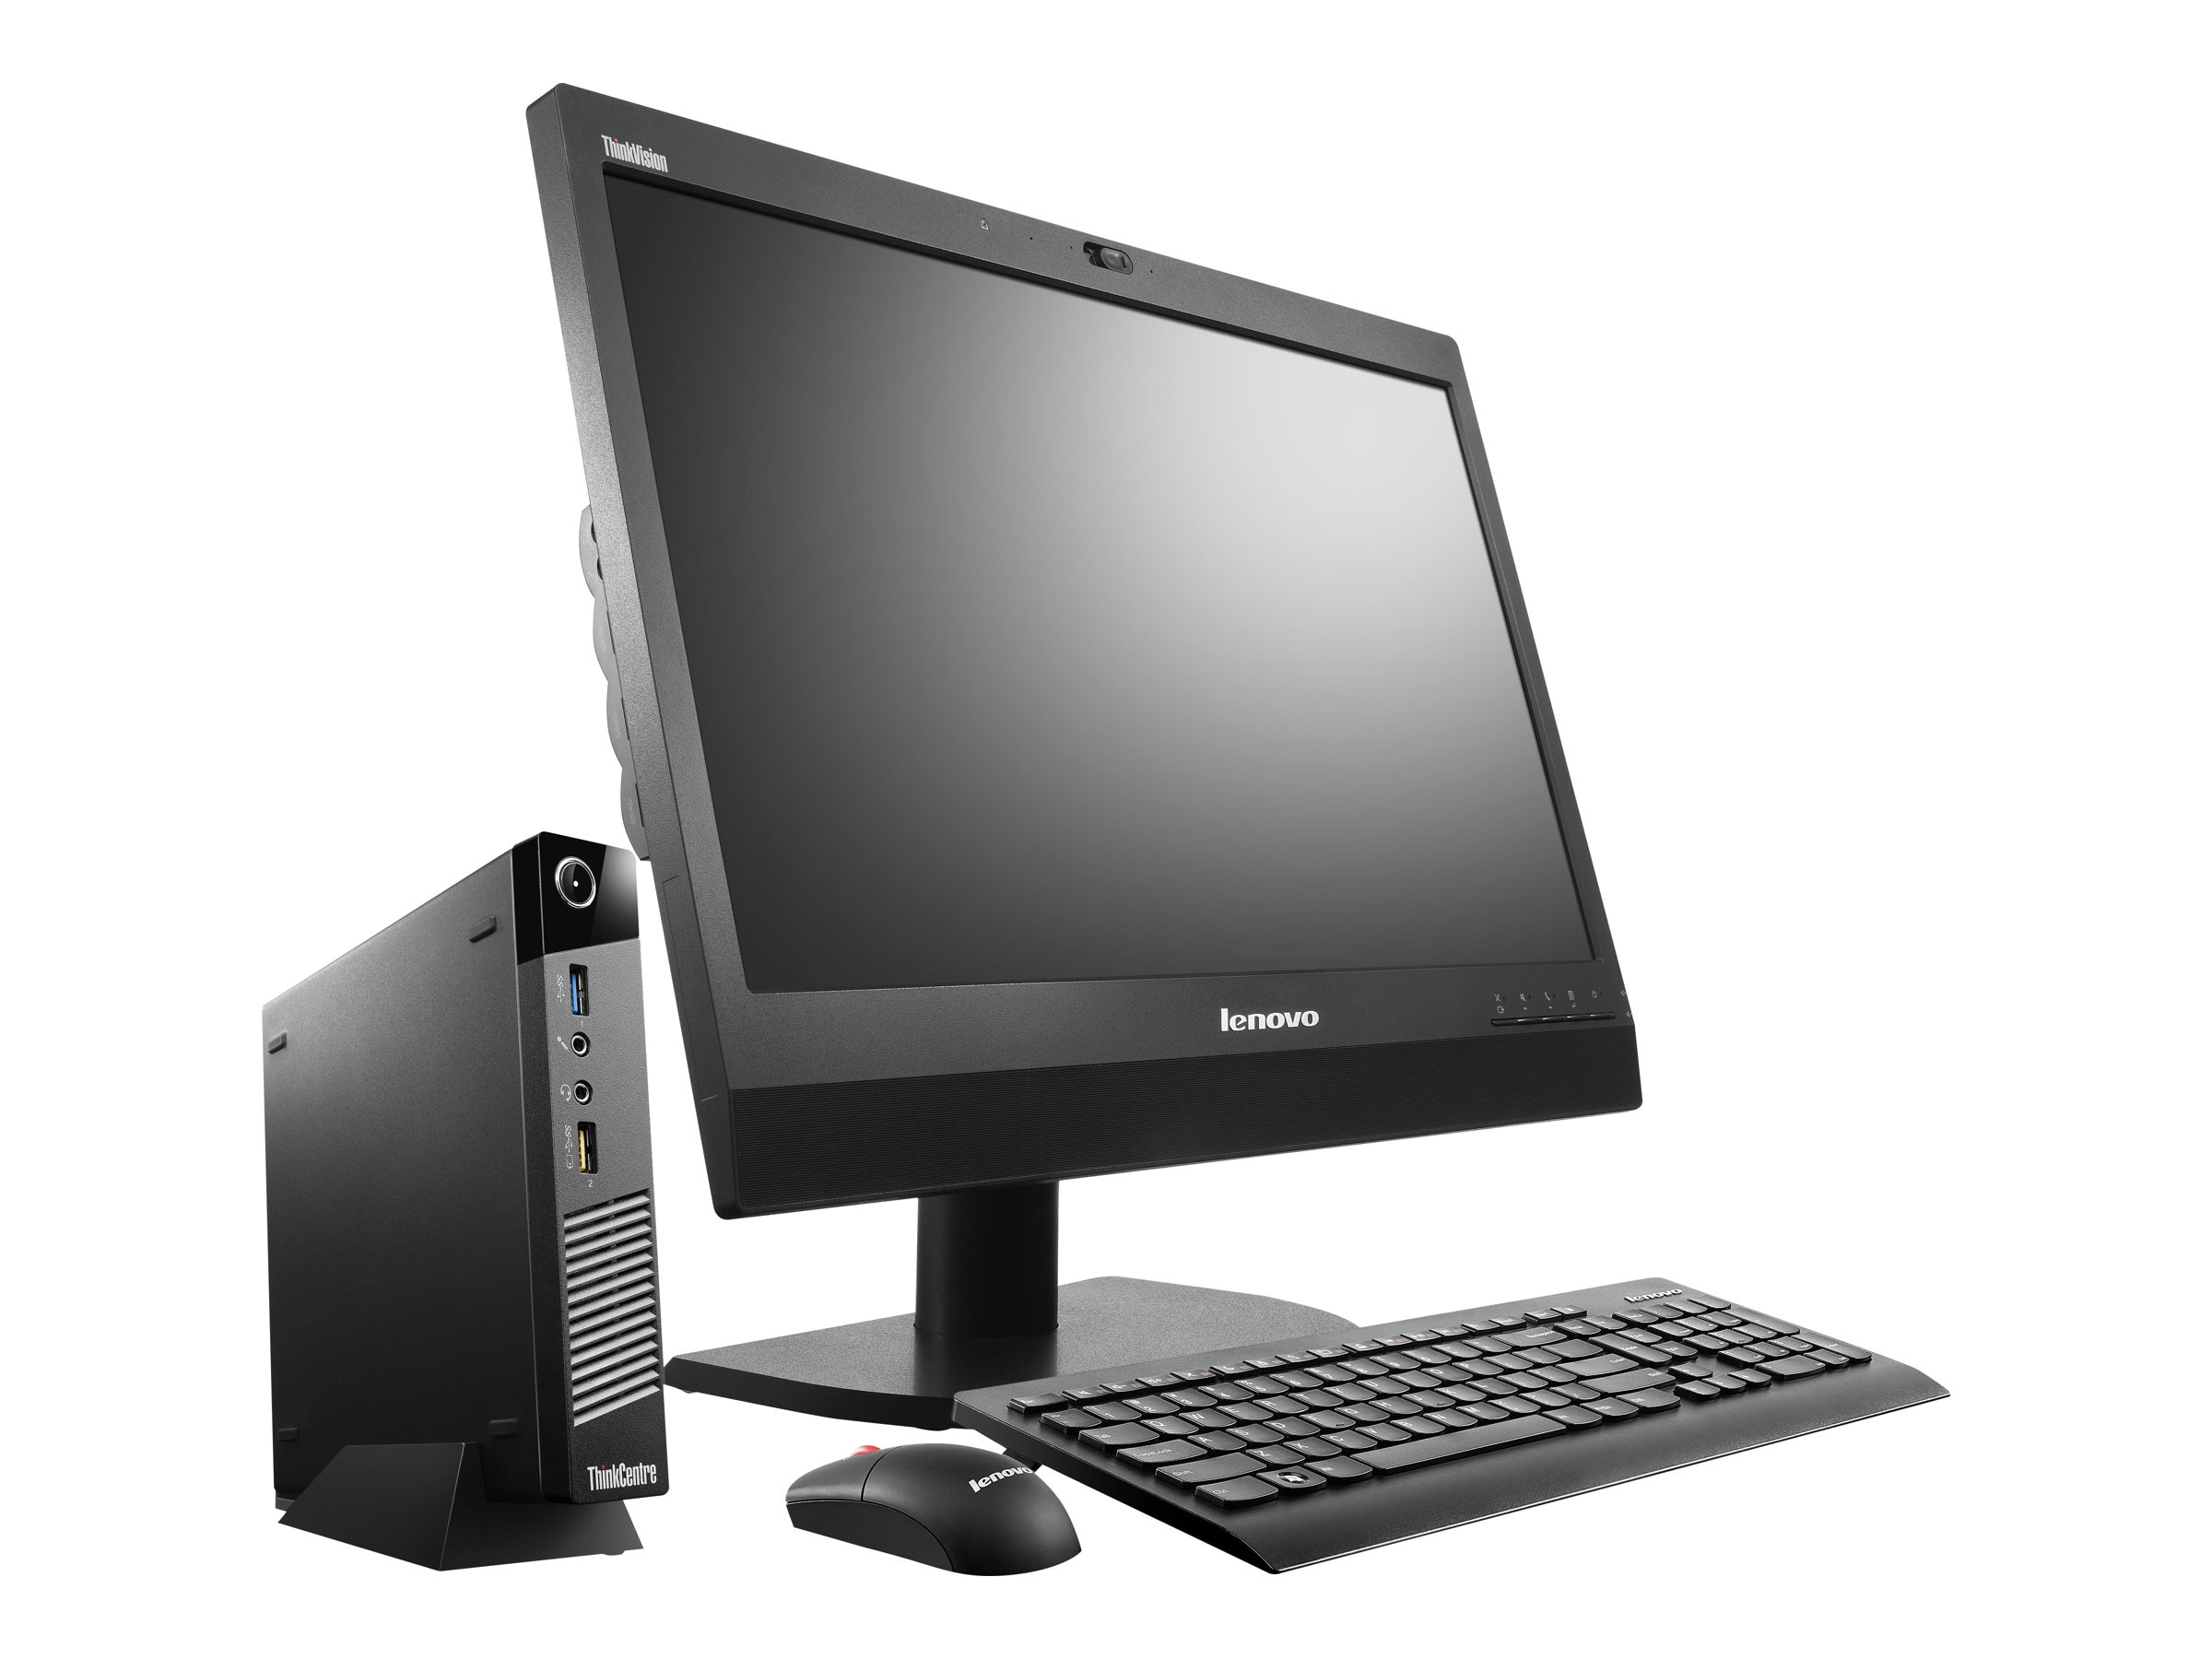 Lenovo TopSeller ThinkCentre M93p 2.0GHz Core i7 8GB RAM 128GB hard drive, 10AB0030US, 17355342, Desktops